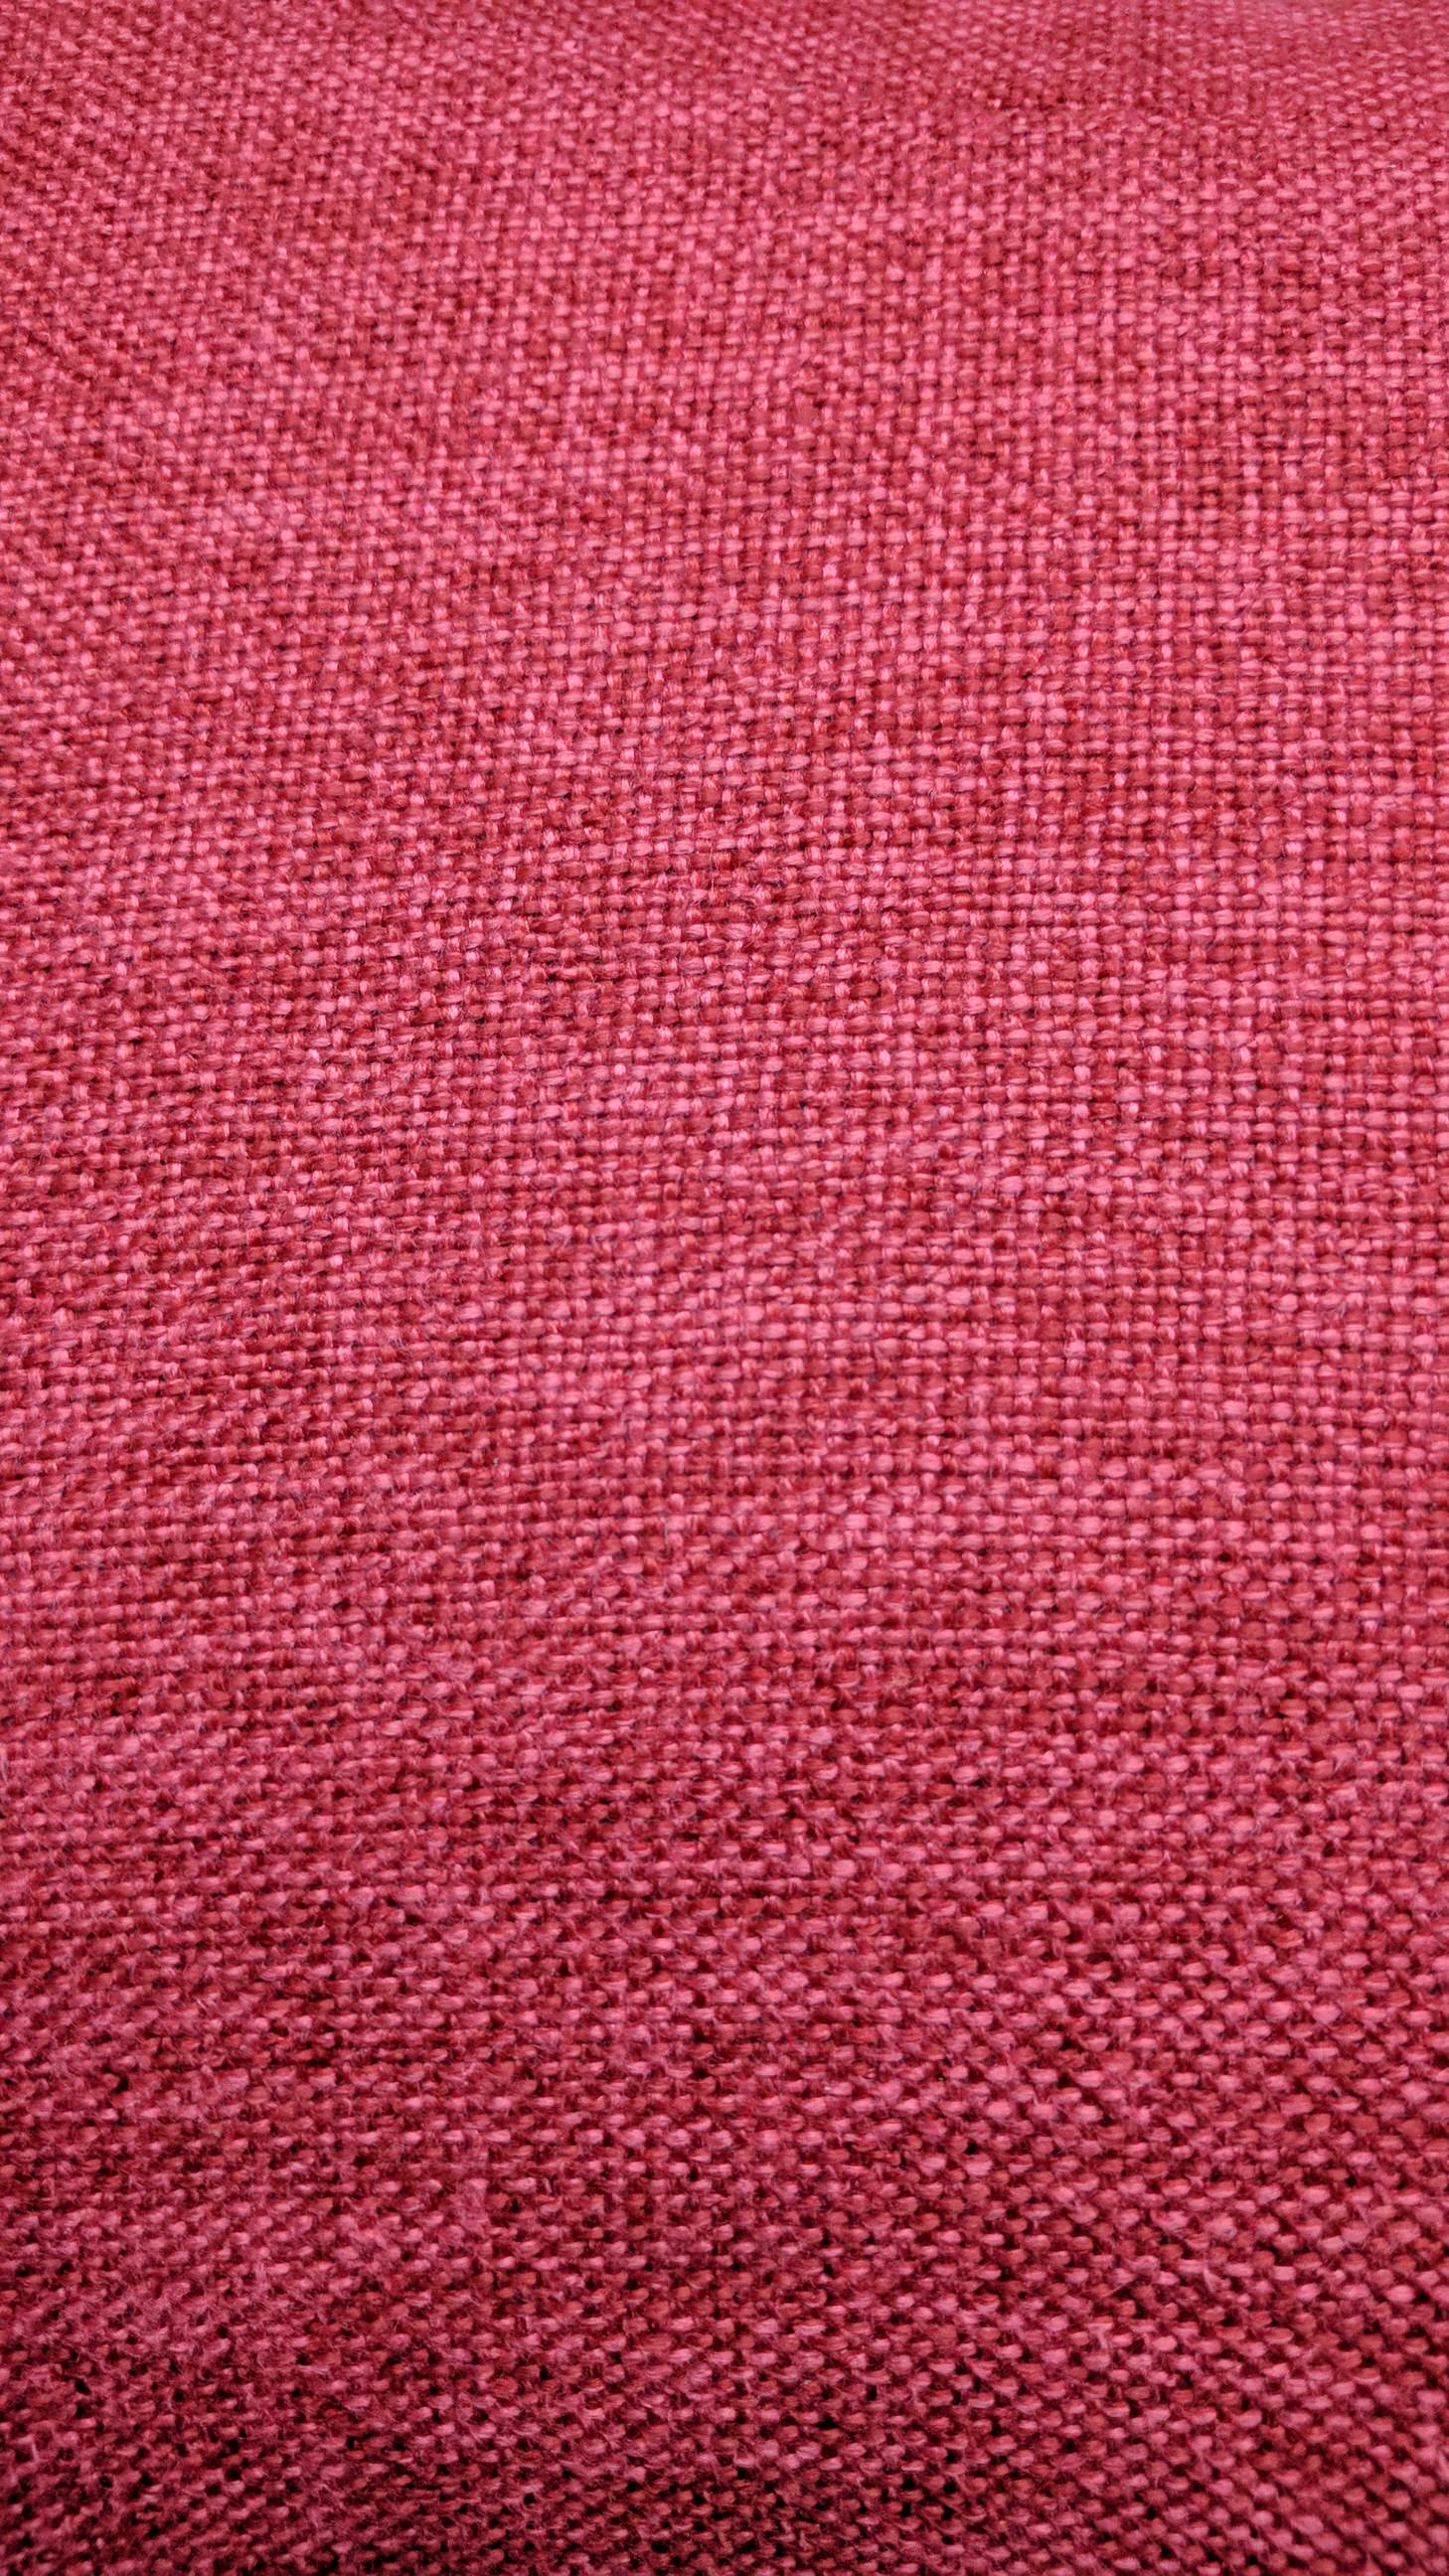 to lounges delaktig gb remove longues with sofas products the easy longue pink en armchairs ikea cover hillared anthracite chaise armrest zipper makes